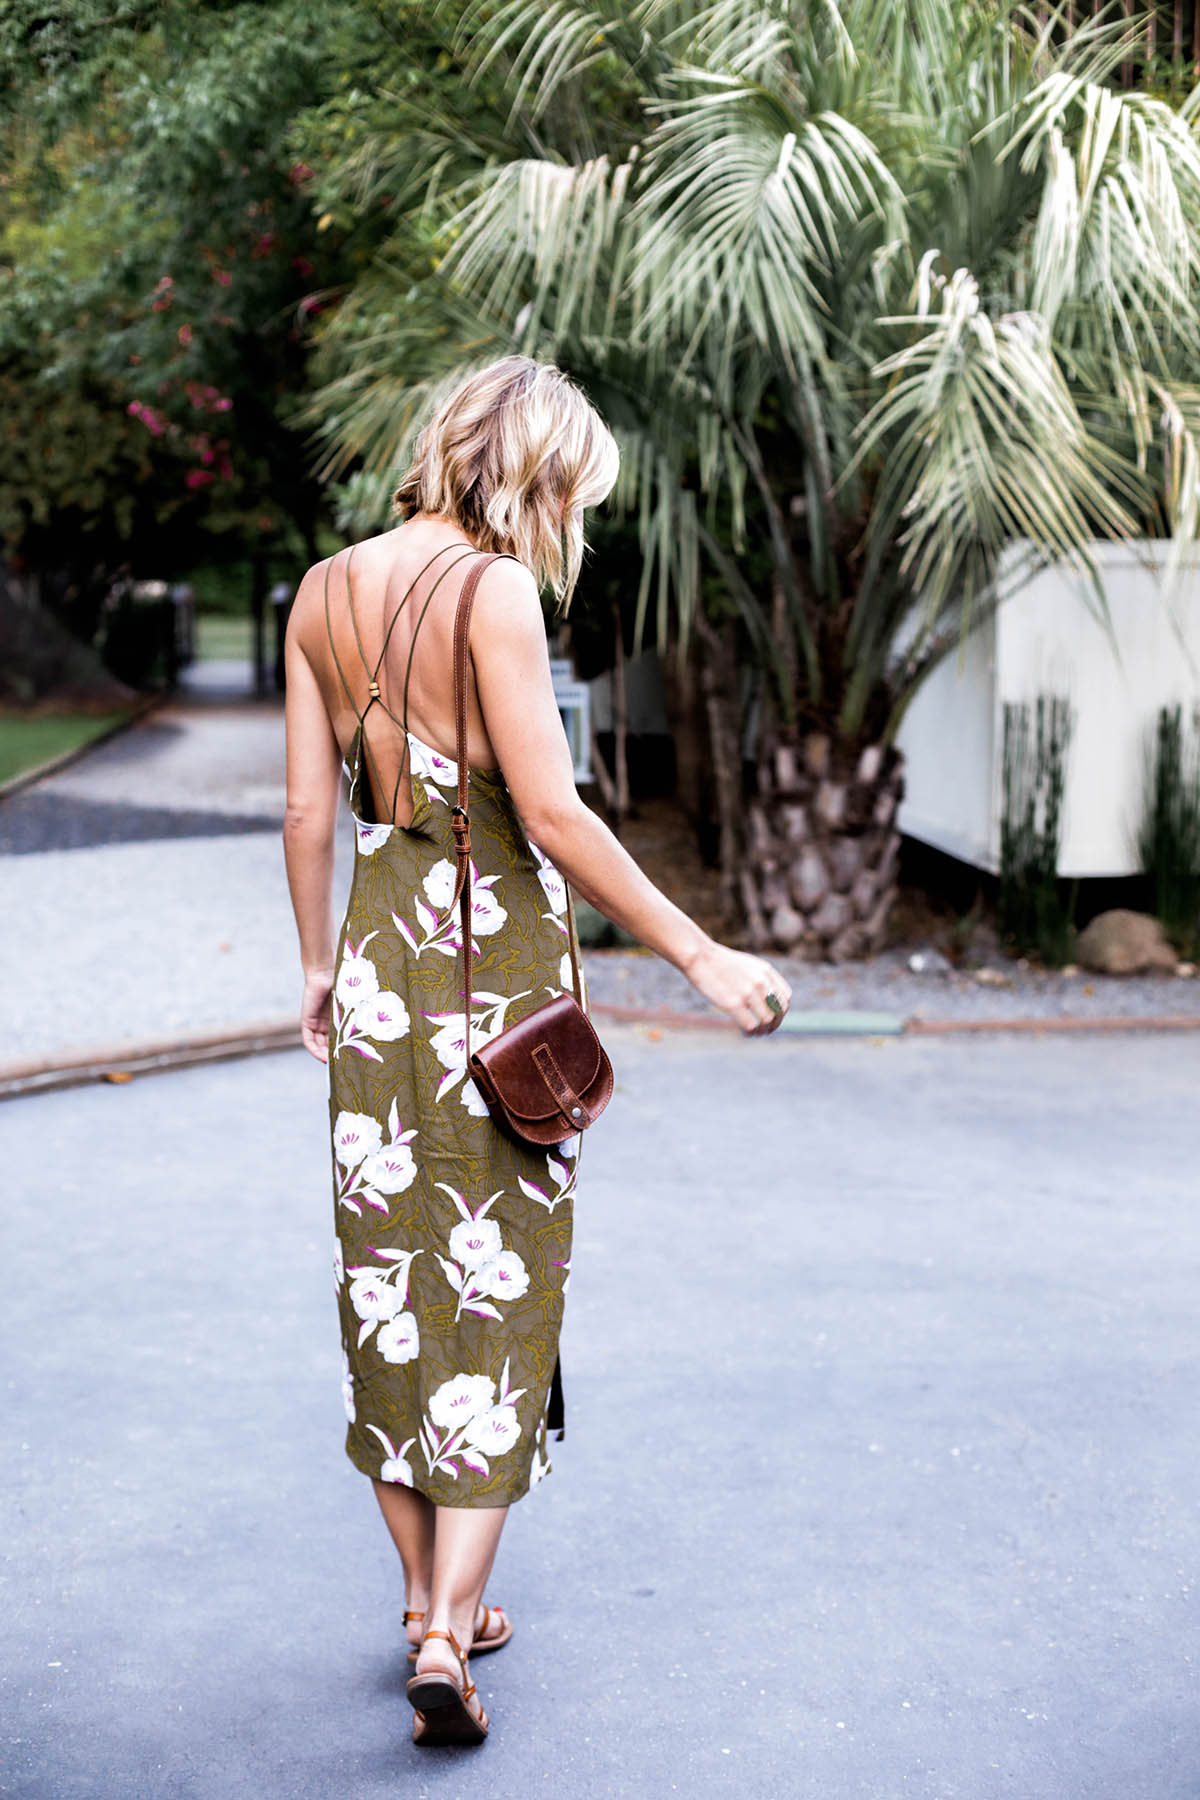 A Tropical Print Dress for Summer Nights